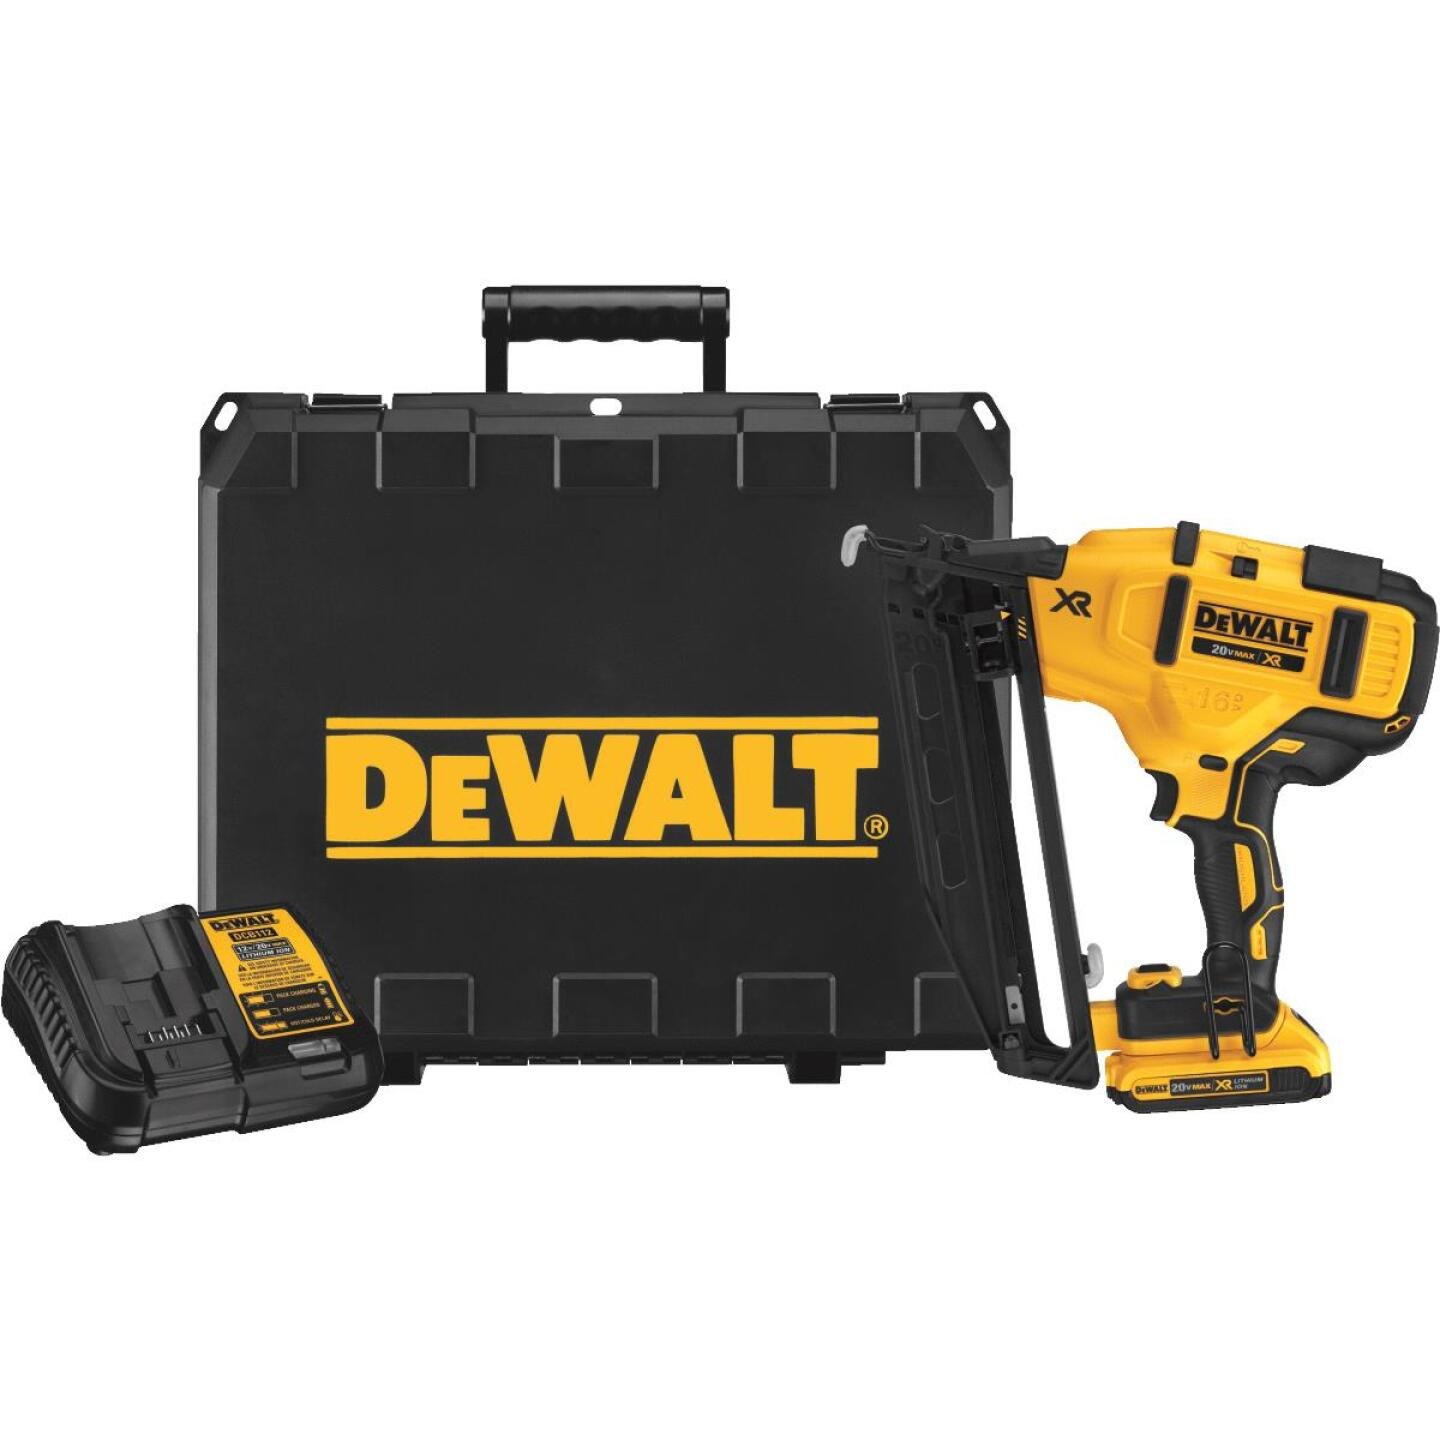 DeWalt 20 Volt MAX XR Lithium-Ion 16-Gauge 2-1/2 In. Angled Cordless Finish Nailer Kit Image 1